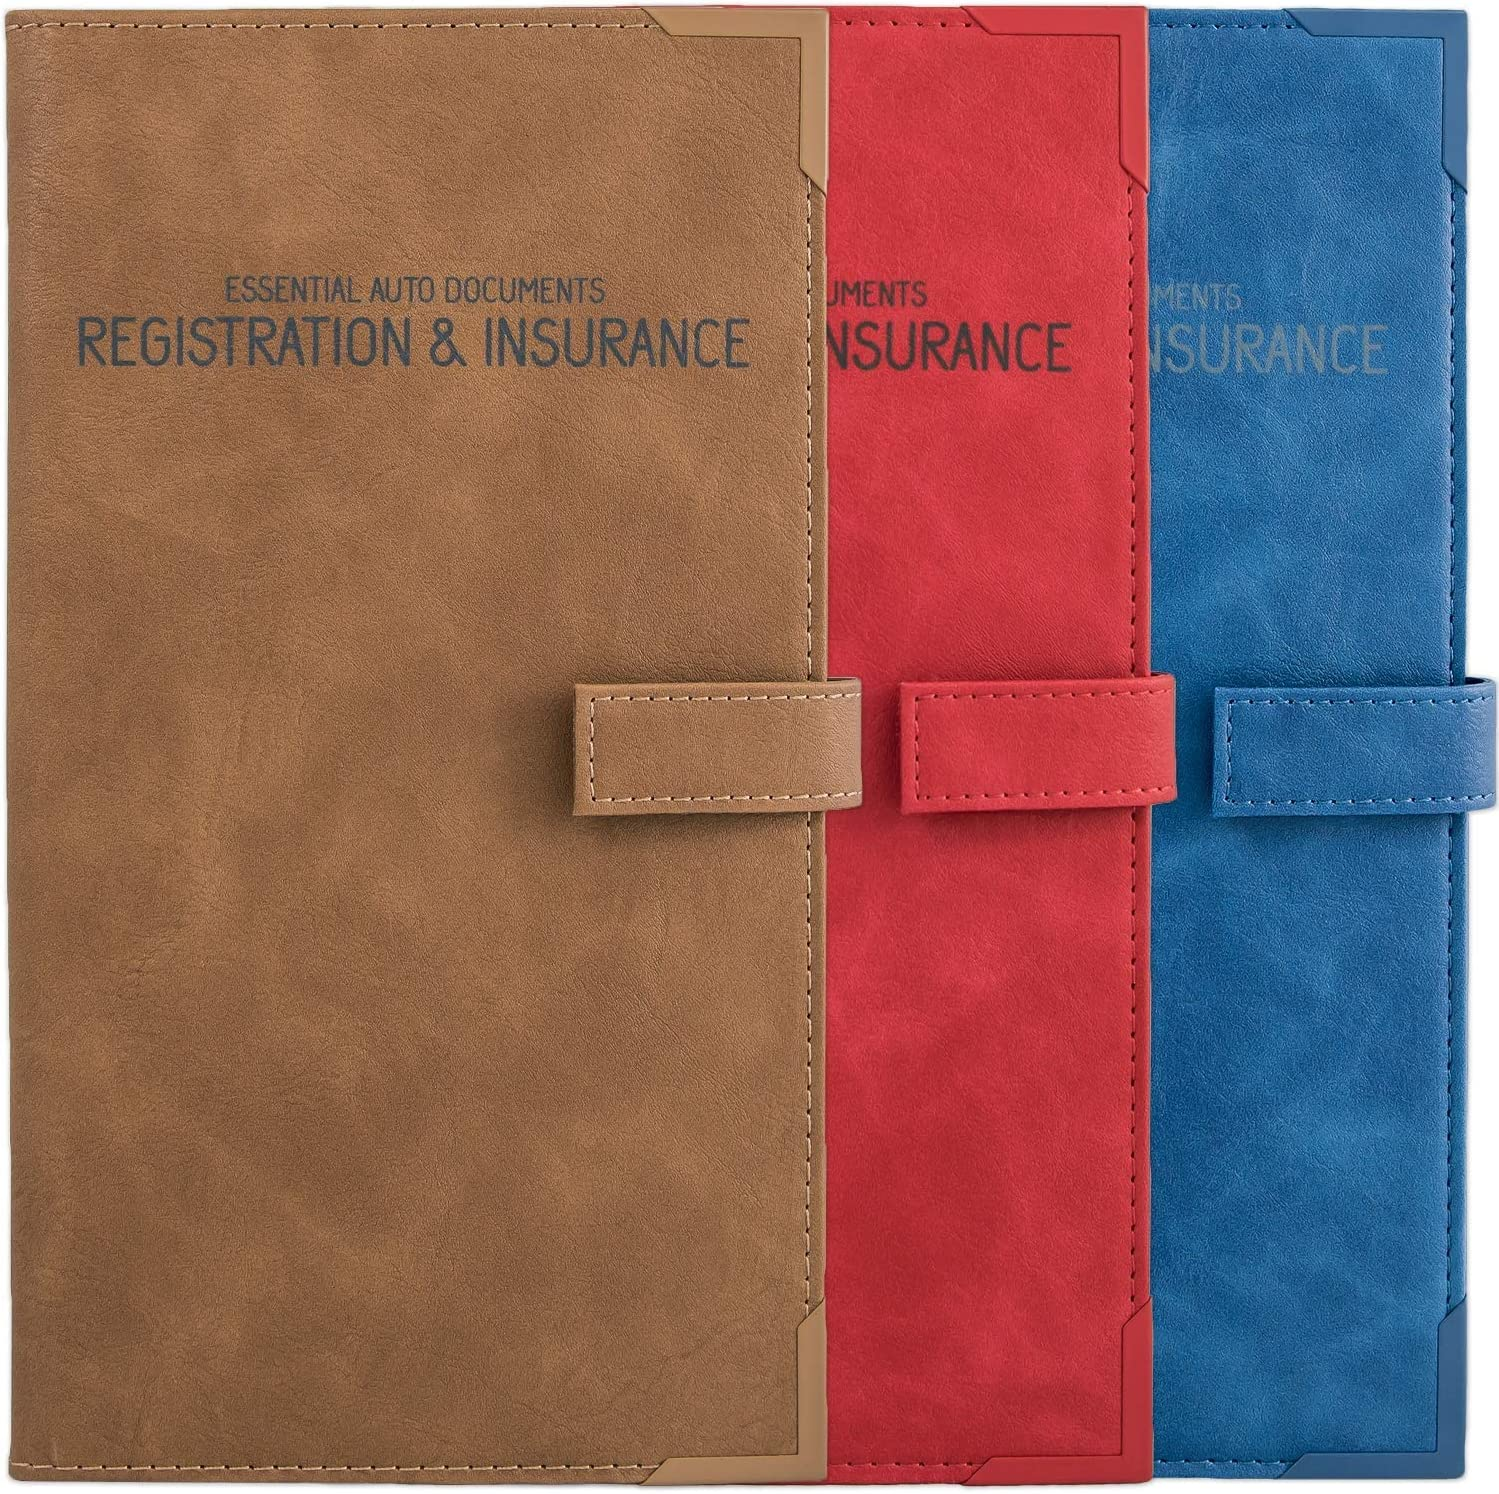 Auto Insurance and Max 65% OFF Registration Card Box Holder Long Beach Mall Glove Vehicle -